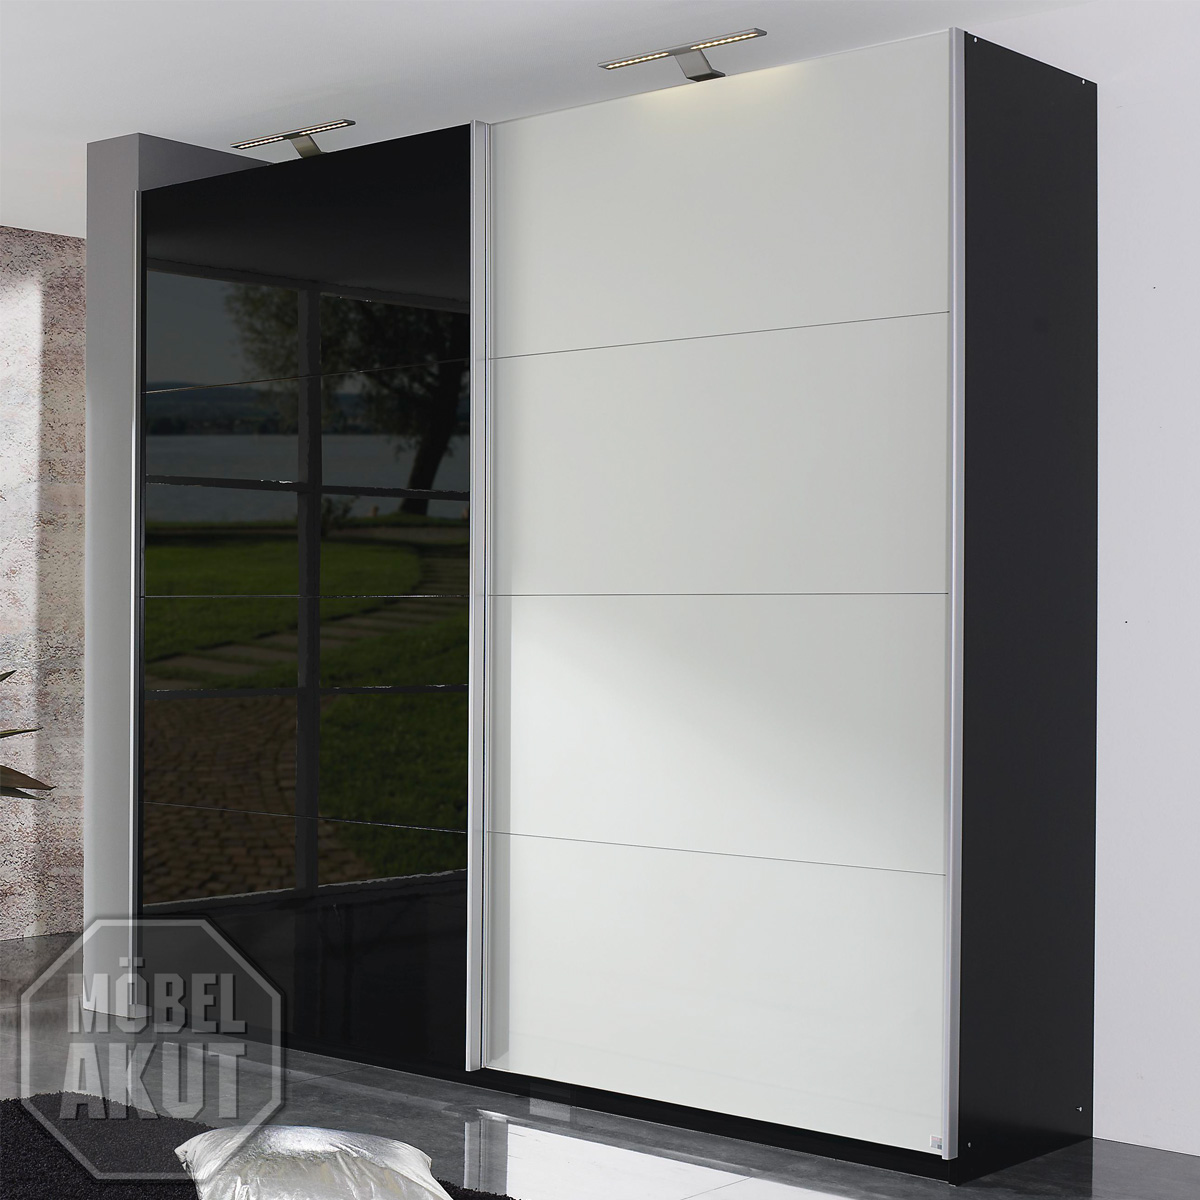 schwebet renschrank beluga kleiderschrank in schwarz. Black Bedroom Furniture Sets. Home Design Ideas